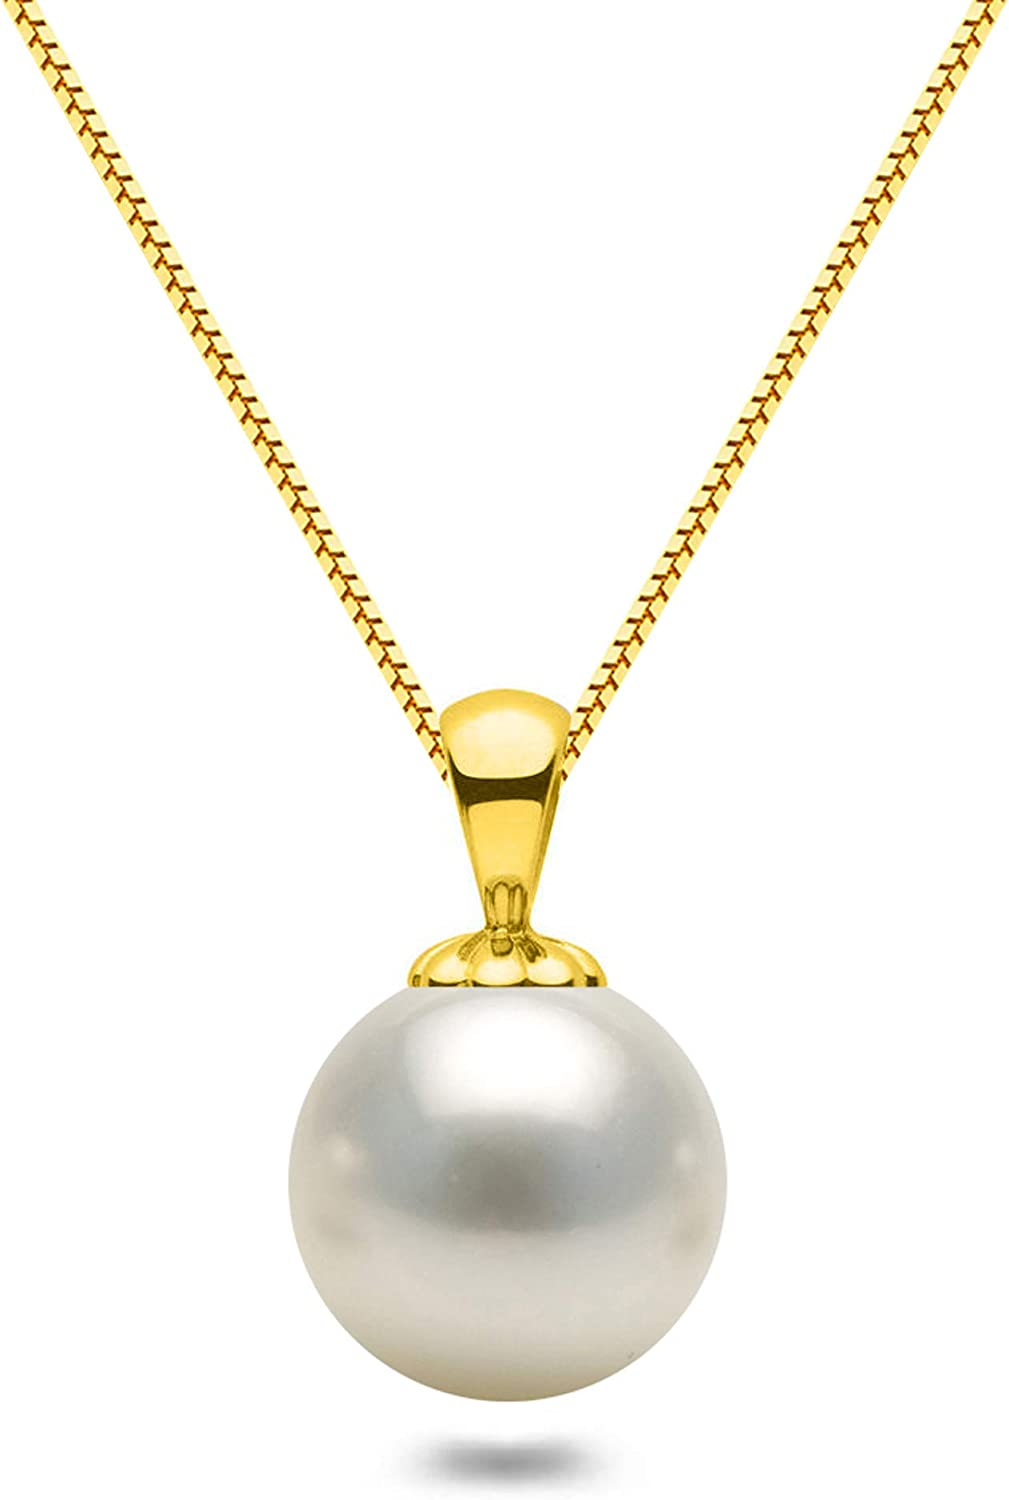 Orien Jewelry White Japanese AAAA 6-10mm Akoya Cultured Pearl Pendant Necklace 16//18 Solitaire Necklace Pendant